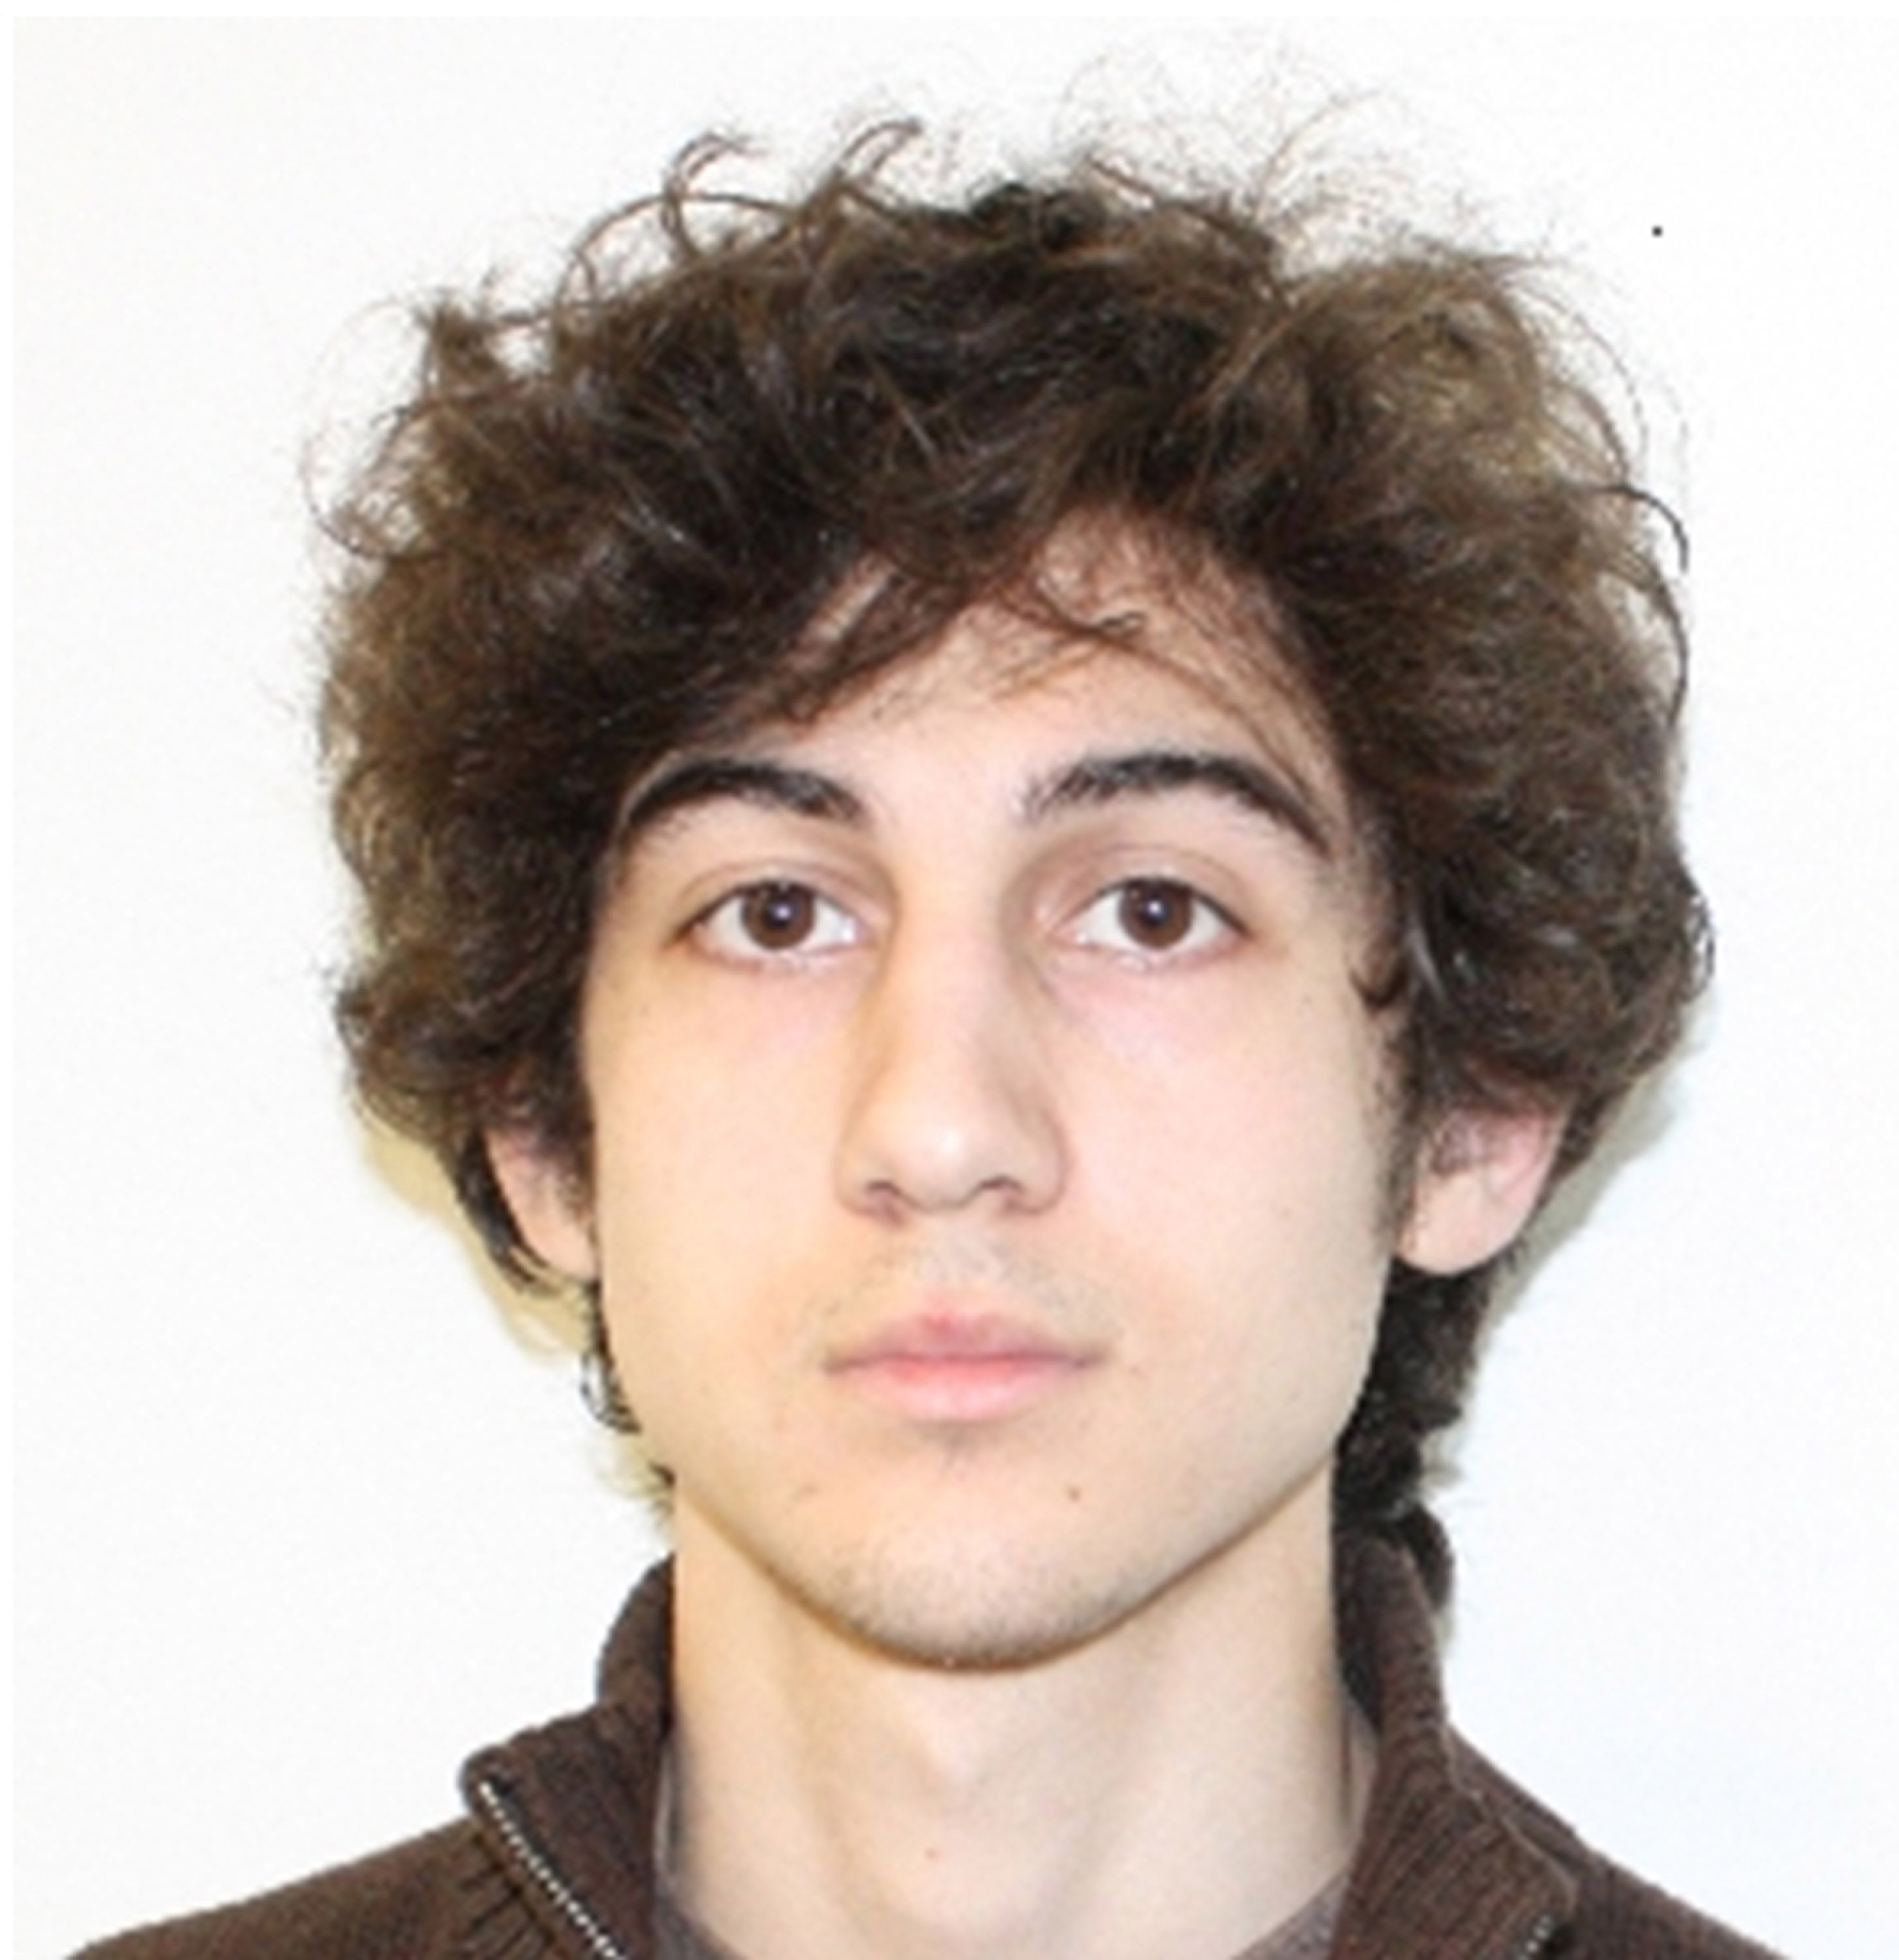 Boston Marathon bomber begins appeal to overturn his death sentence